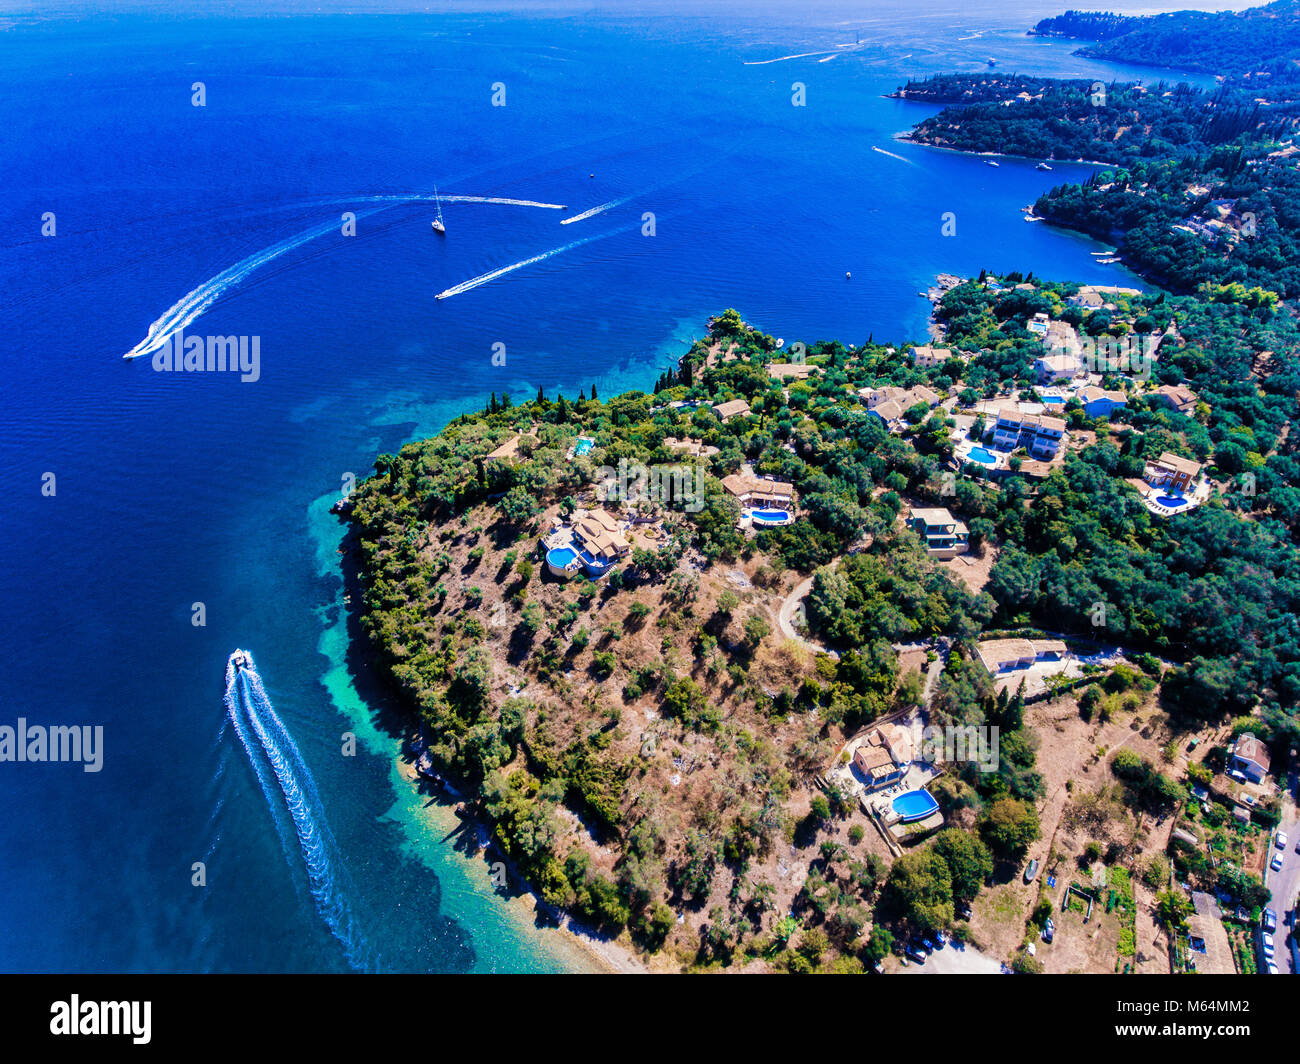 Corfu island clifs with traditional houses with swimming pool, yachts and clear blue waters. Kerkyra Island, Greece. Stock Photo